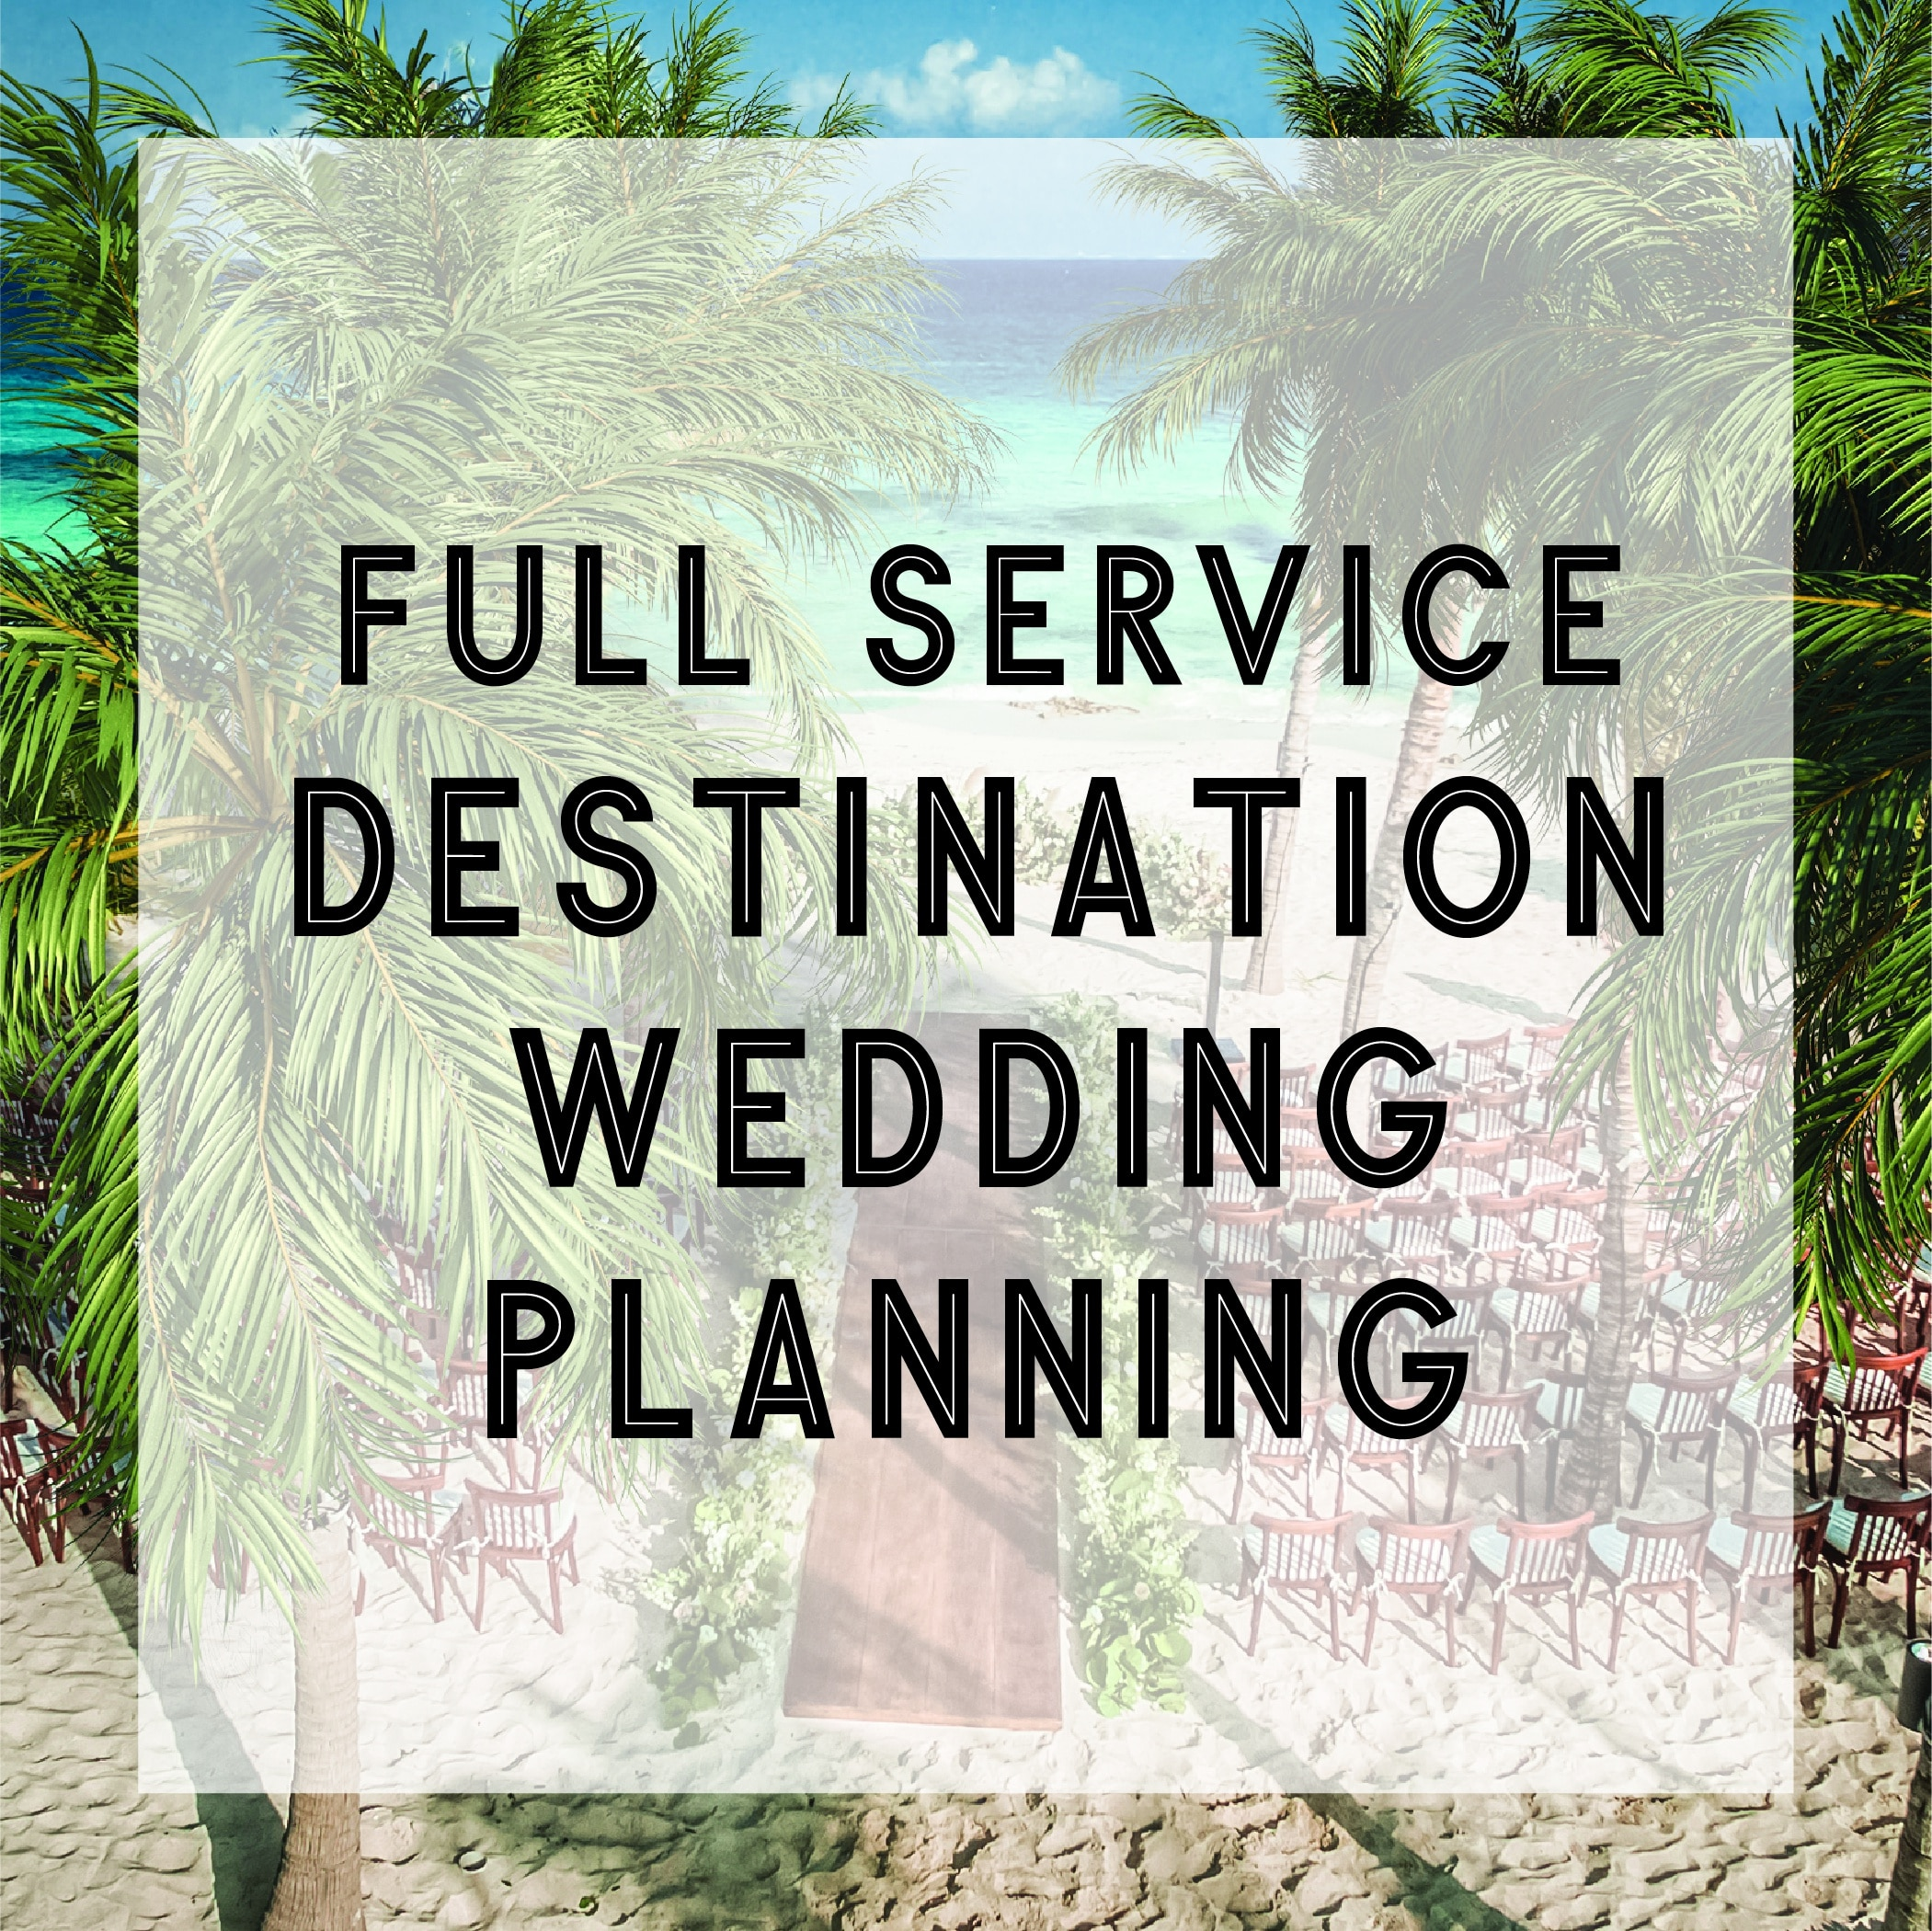 Full Service Destination Wedding Planning